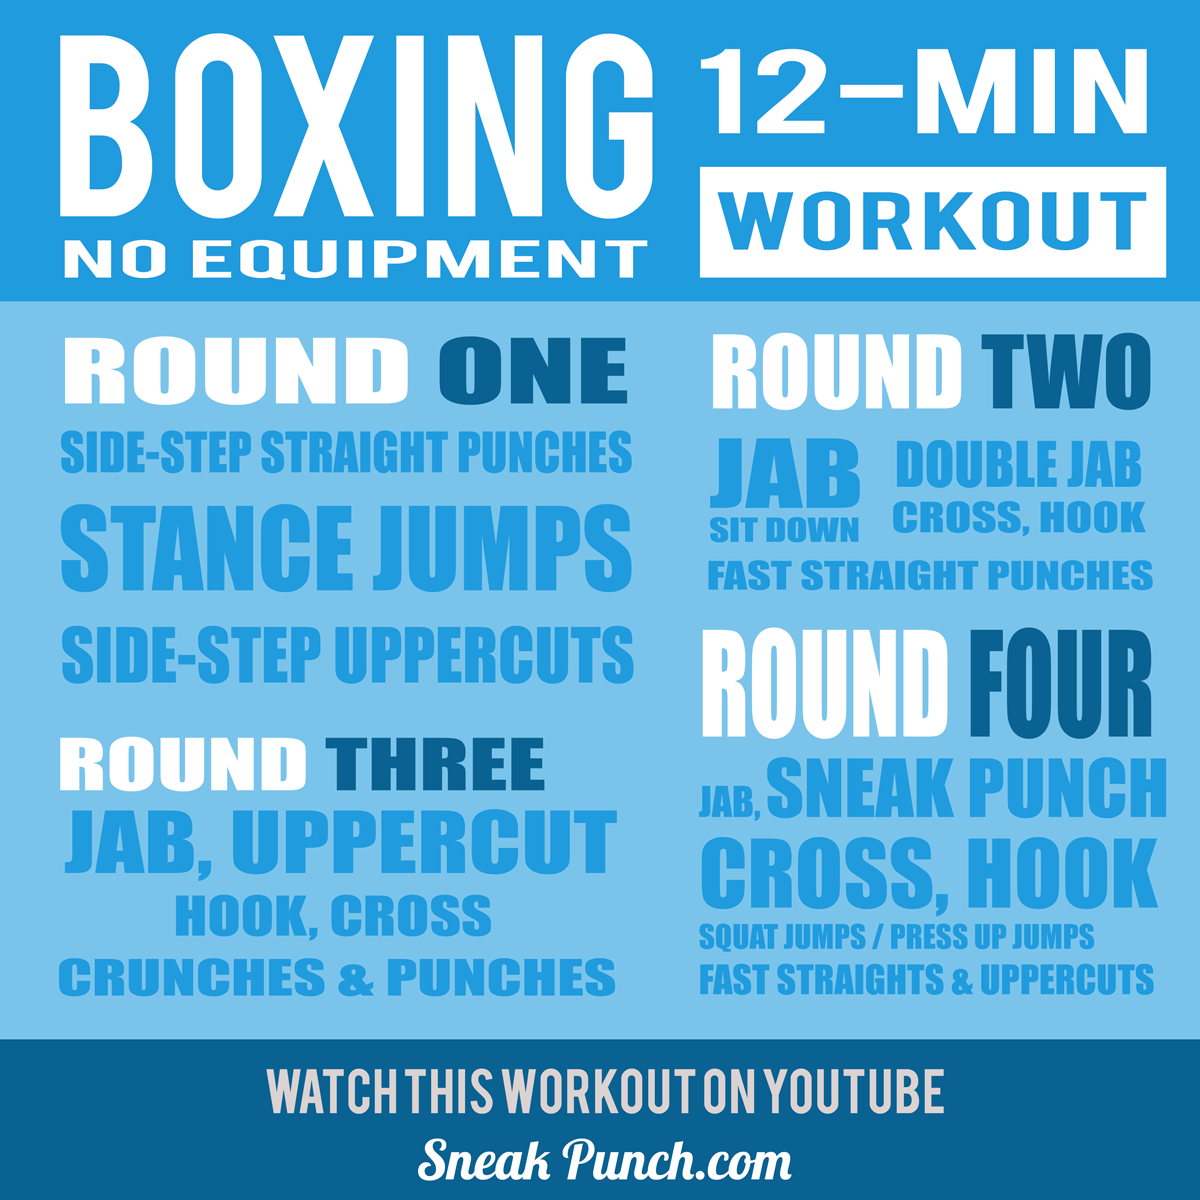 12-Minute Boxing Workout at Home - No Equipment